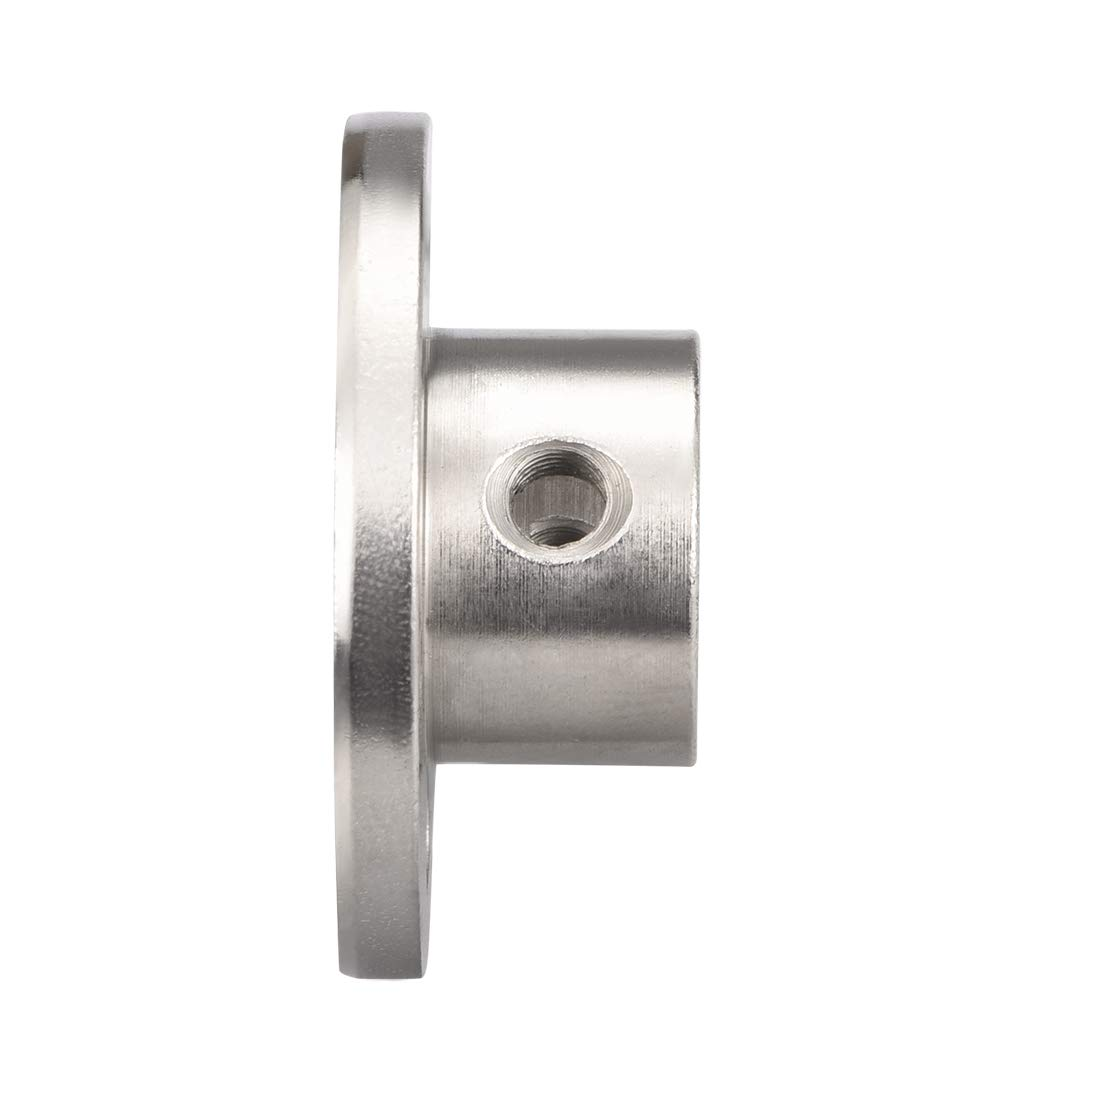 uxcell 8mm Inner Dia H13D16 Rigid Flange Coupling Motor Guide Shaft Coupler Motor Connector Silver Tone for DIY Parts